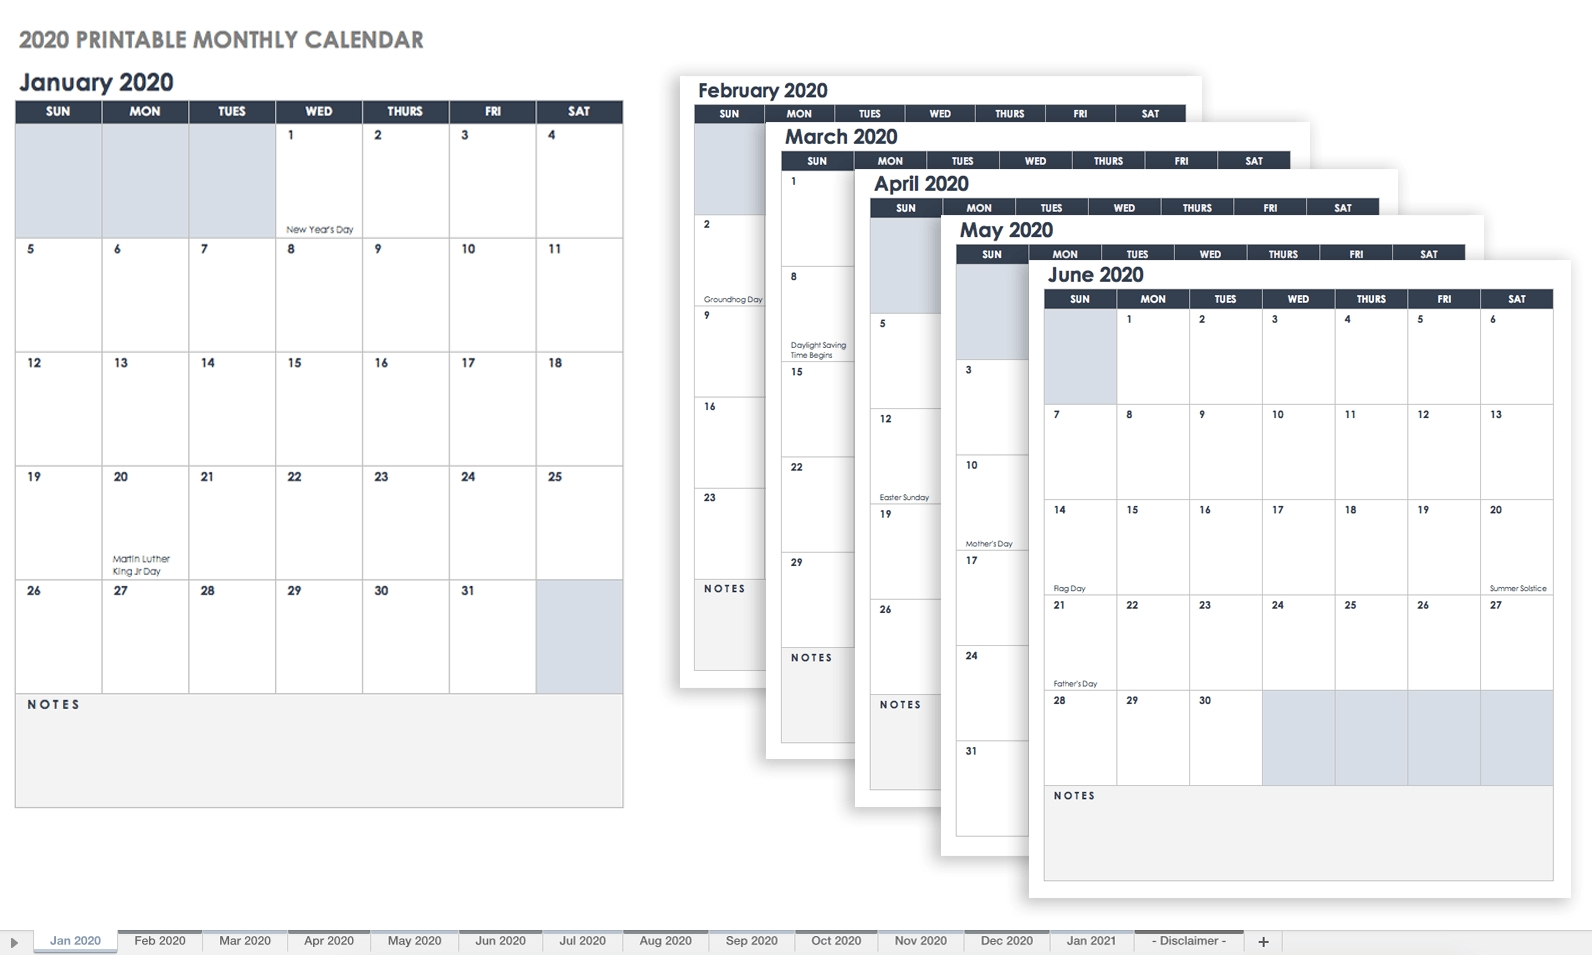 Free Blank Calendar Templates - Smartsheet with regard to Blank One Month Calendar Template